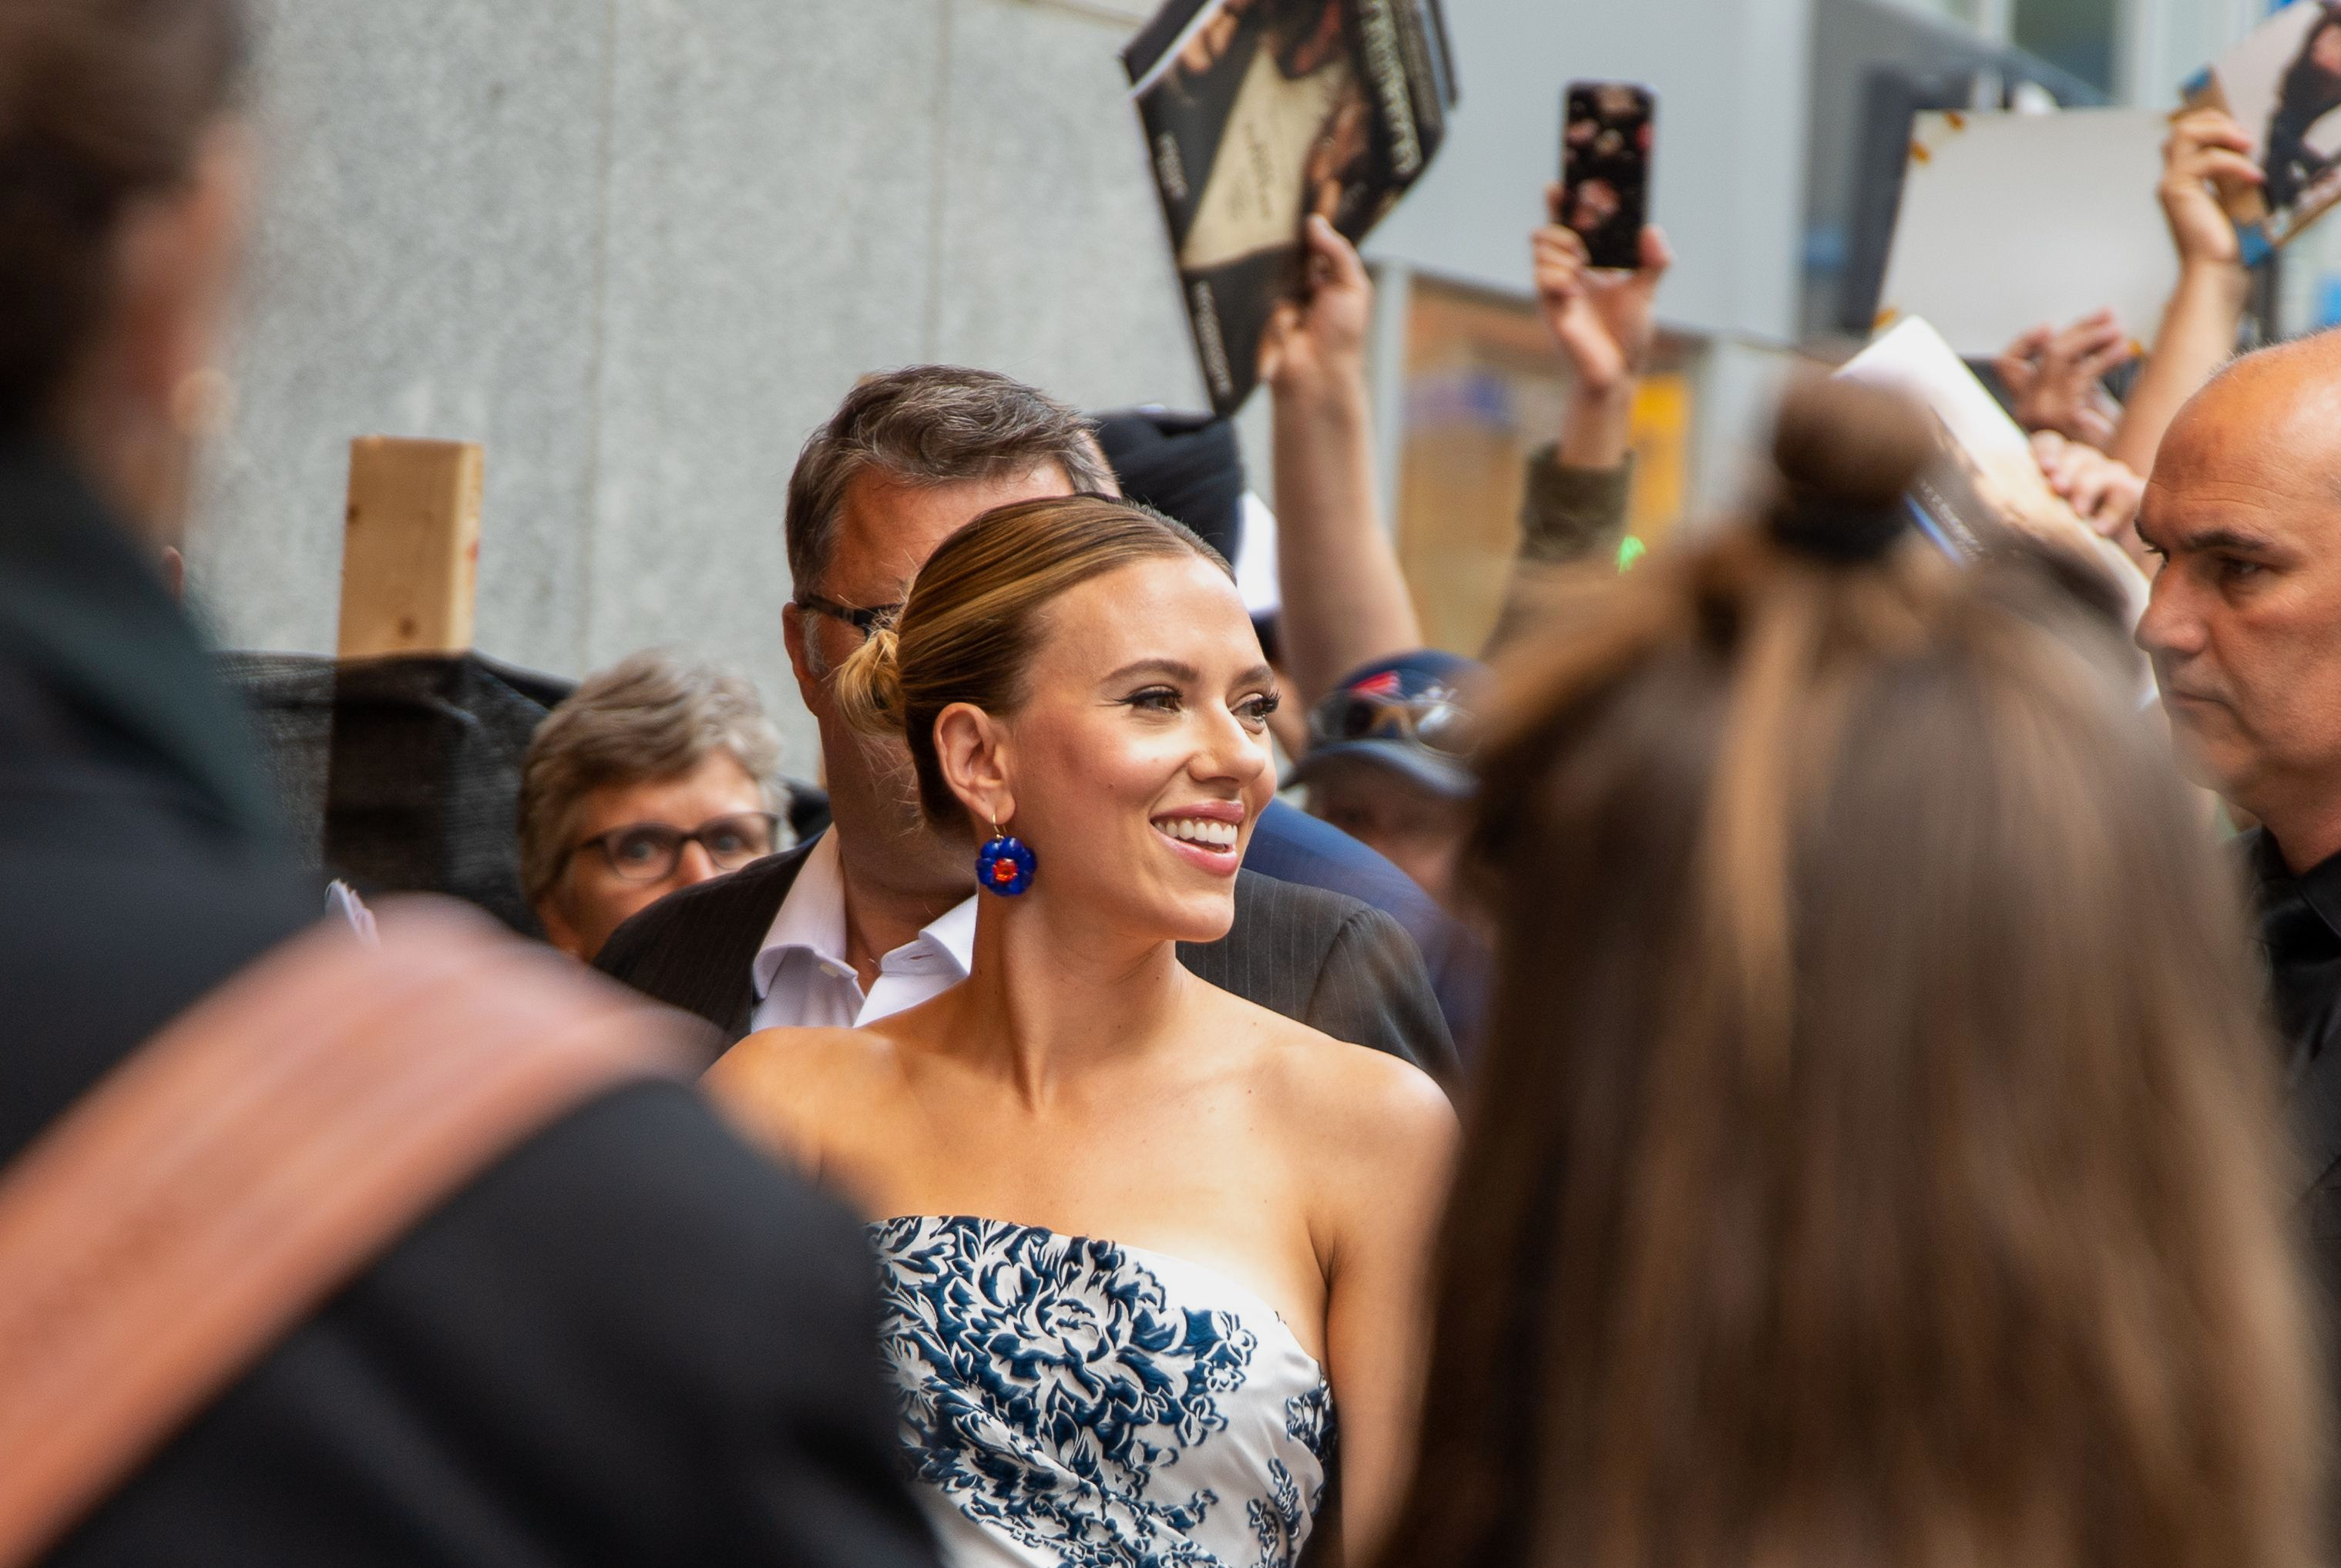 Scarlett Johansson'Marriage Story' premiere, Toronto International Film Festival, Toronto, Canada - 08 Sep 2019